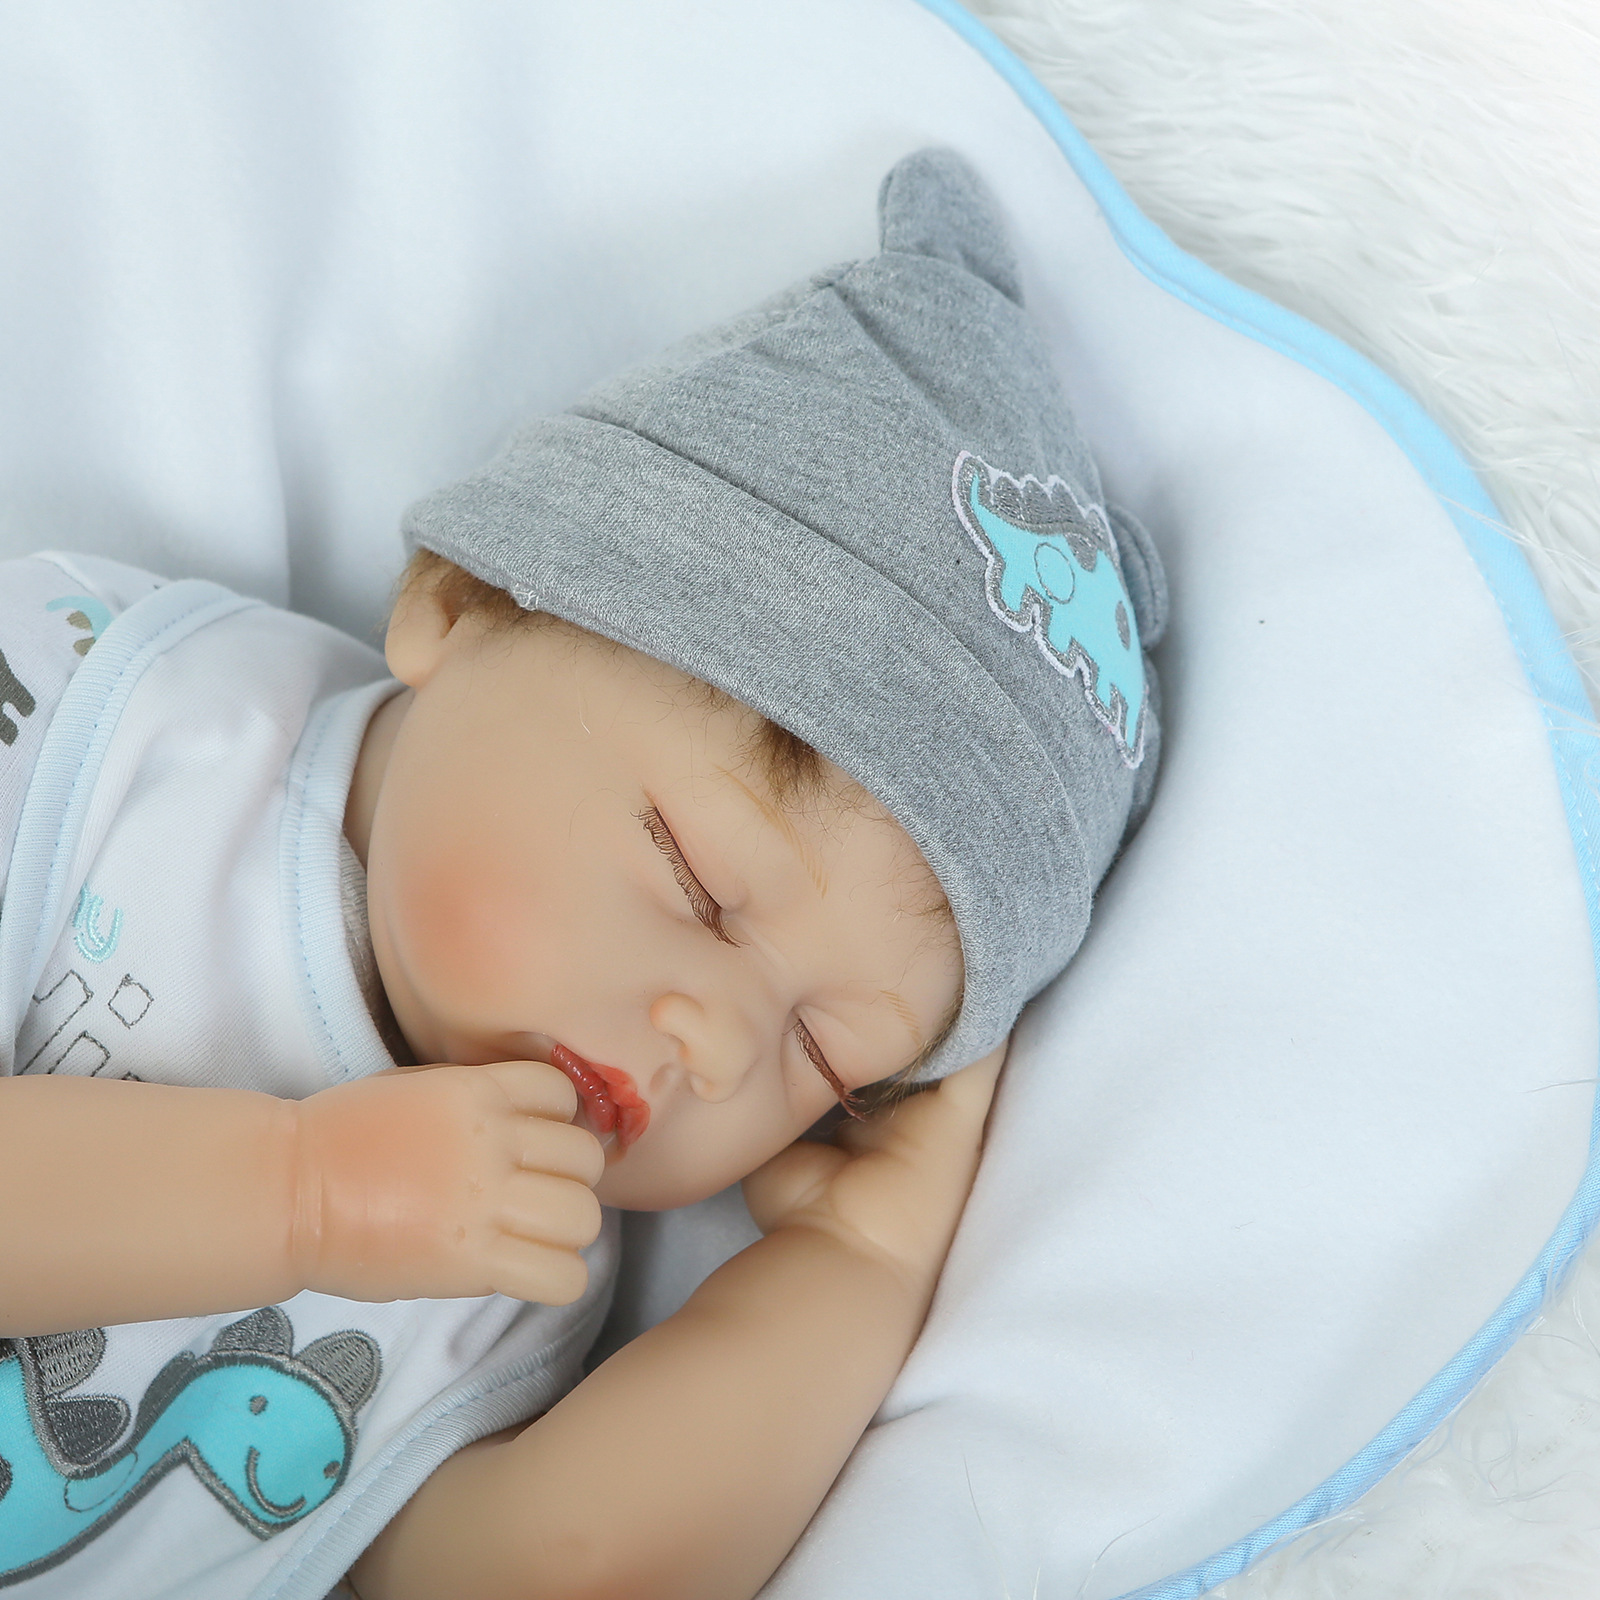 Supply Of Goods EBay Hot Selling Model Infant Doll NPK Reborn Baby Doll